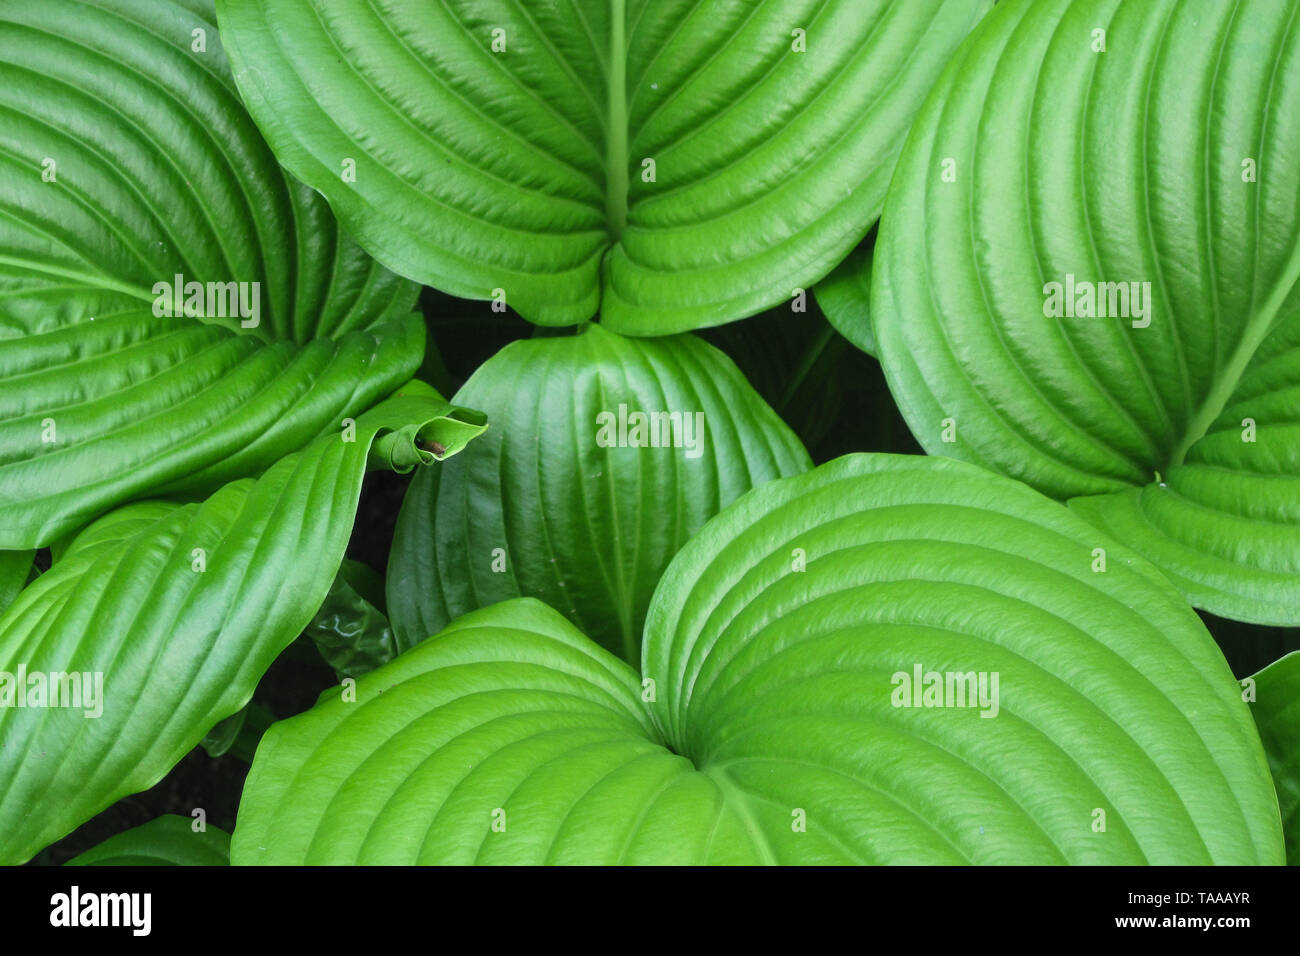 King of Heart leaves green plant background. Big tropical exotic leaf Stock Photo